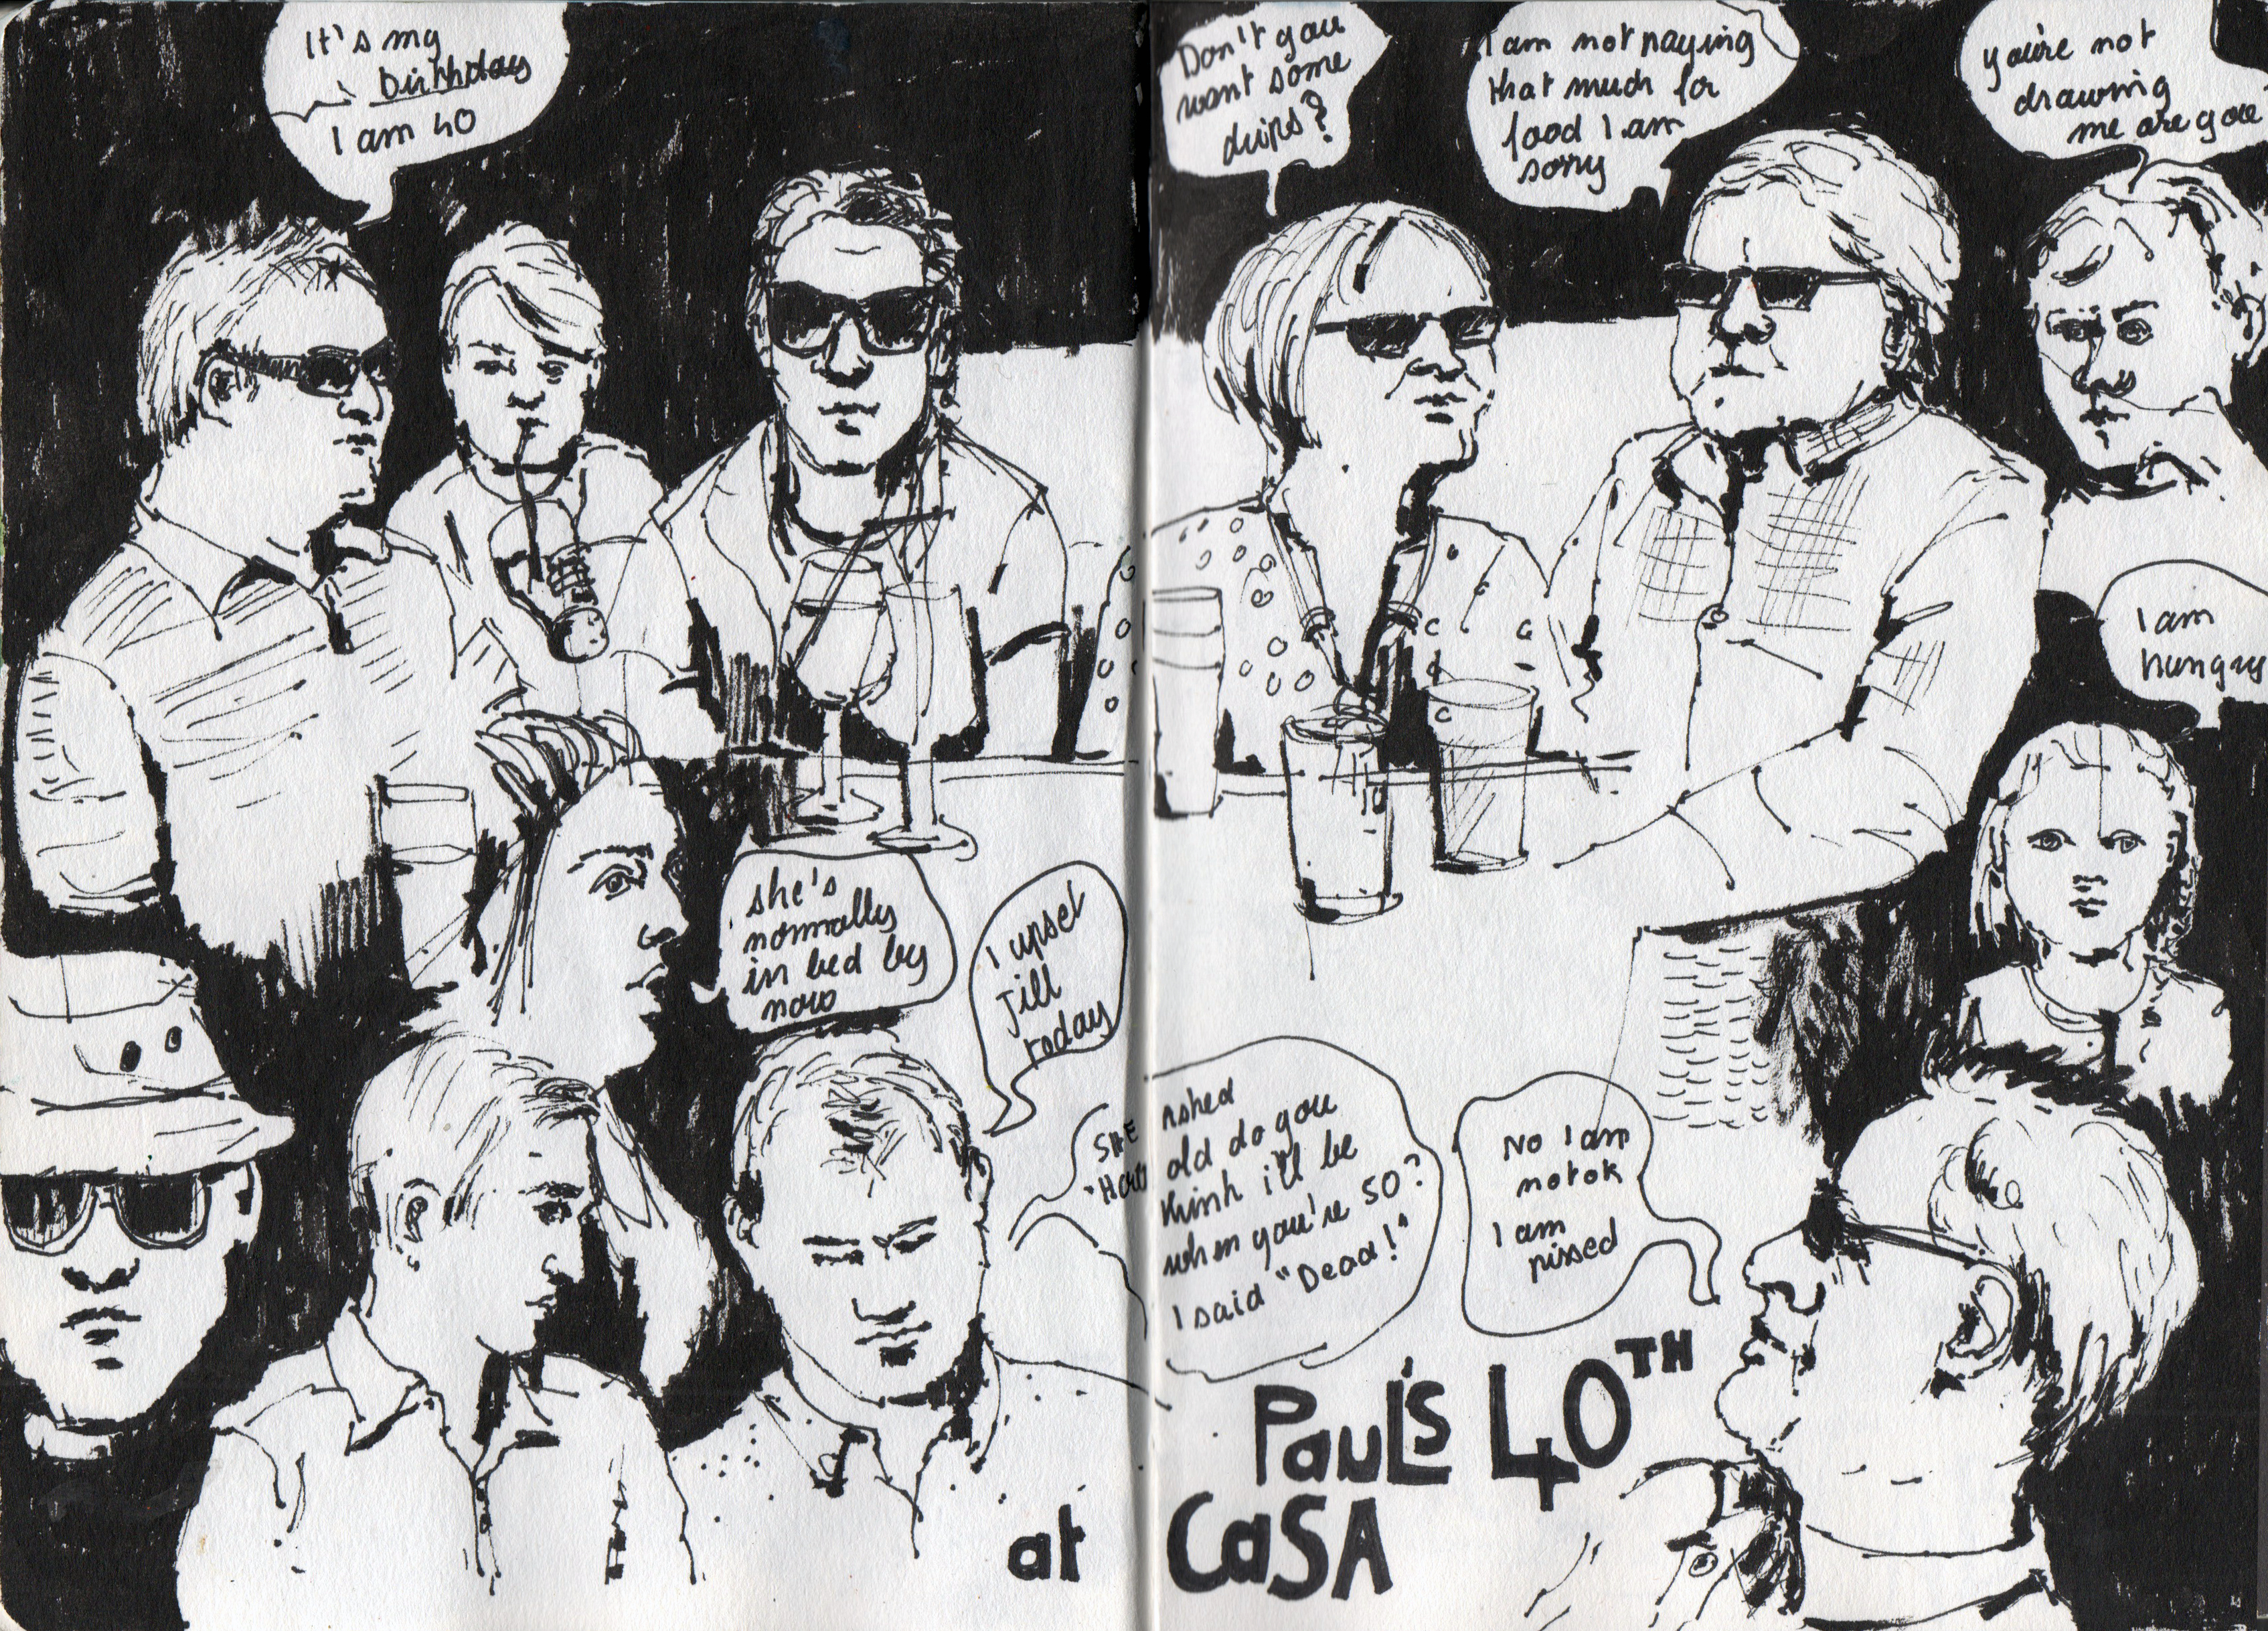 Paul's birthday party drawing in pen and ink